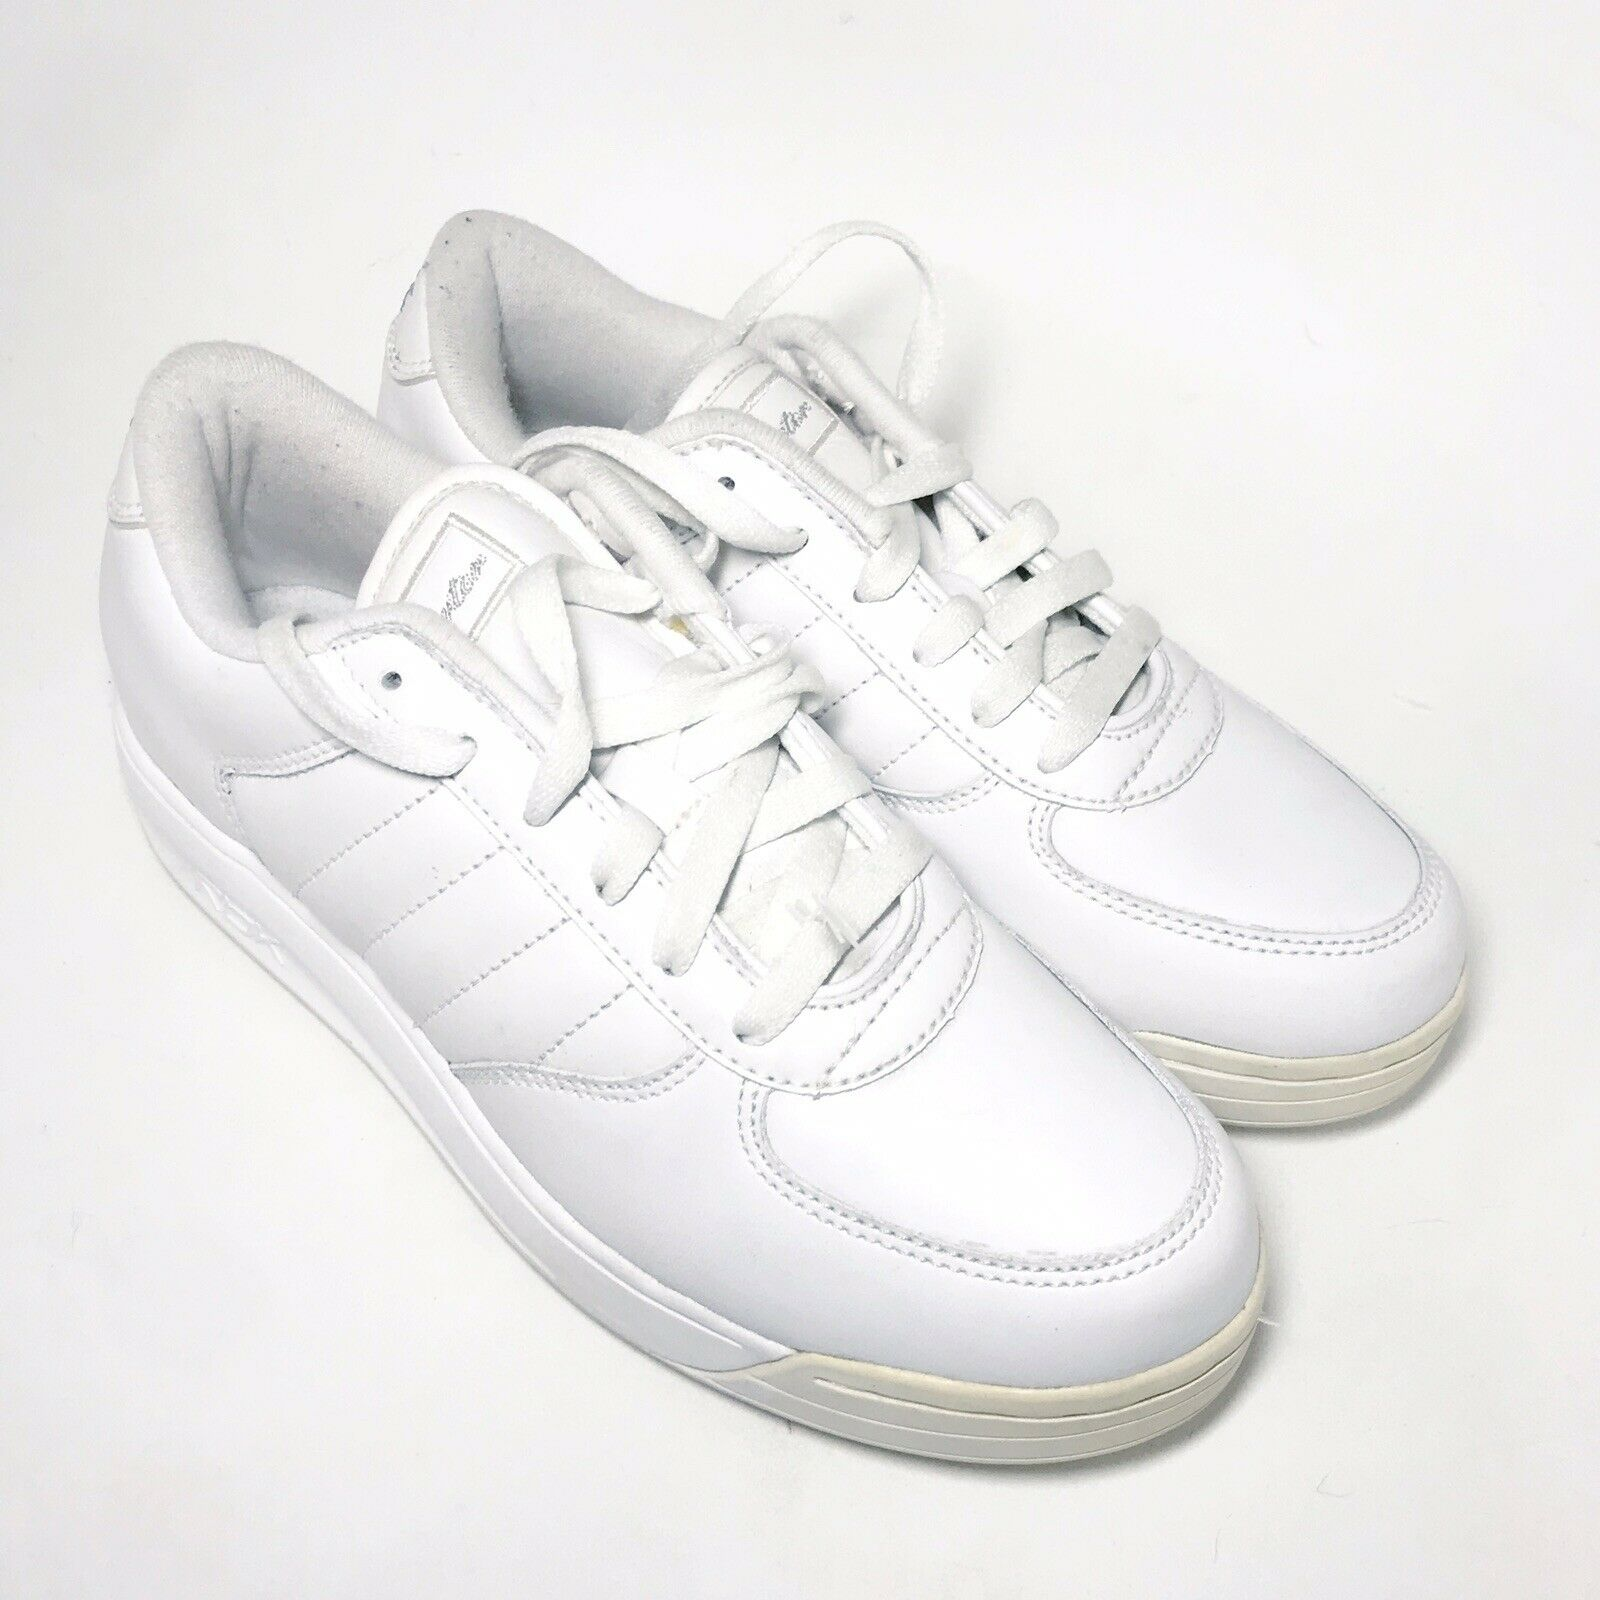 S Carter shoes Reebok All White Originals Sneaker Athletic Sz 5